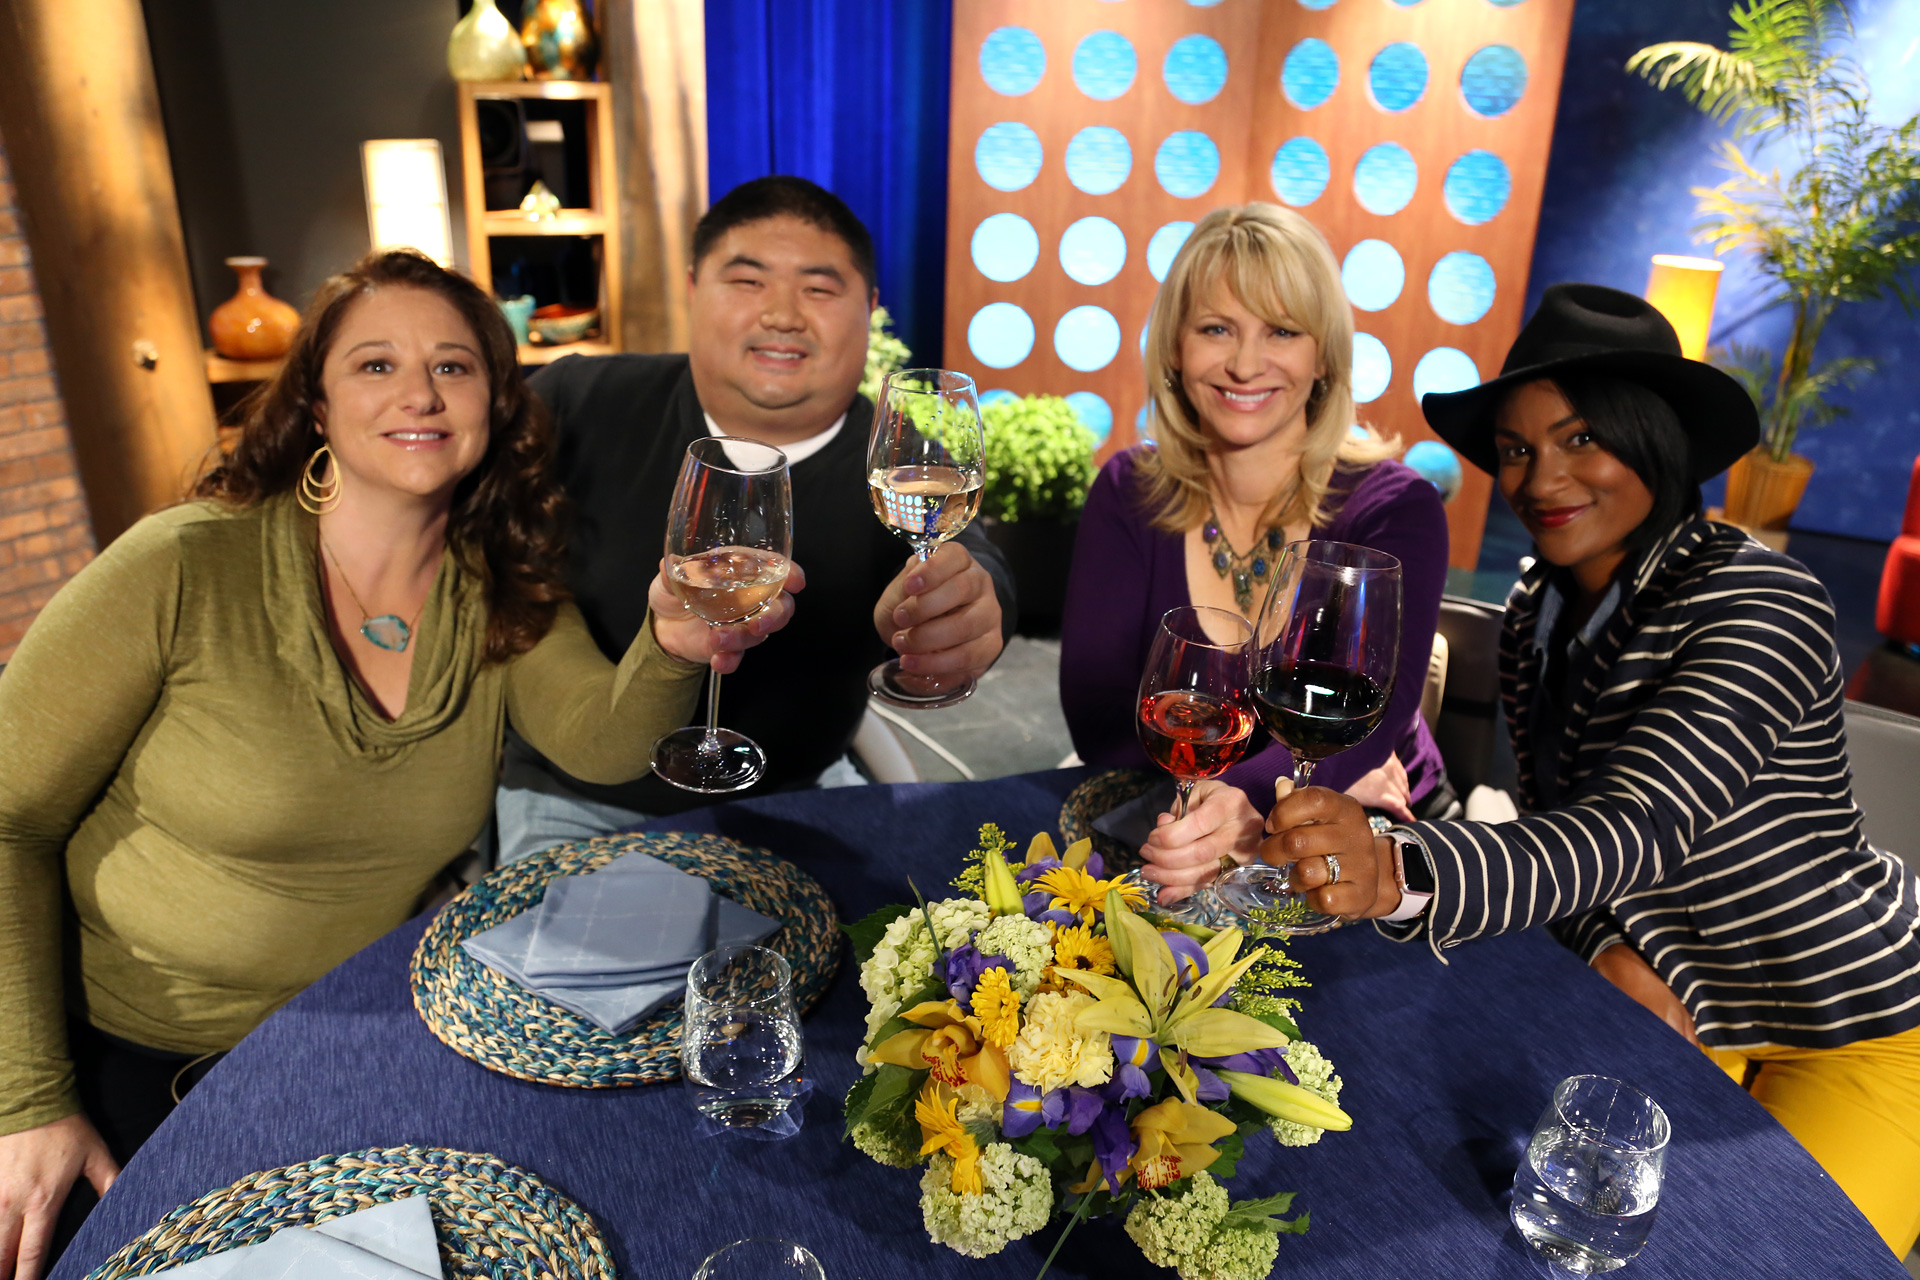 Host Leslie Sbrocco and guests on the set of the episode 15 of season 11.